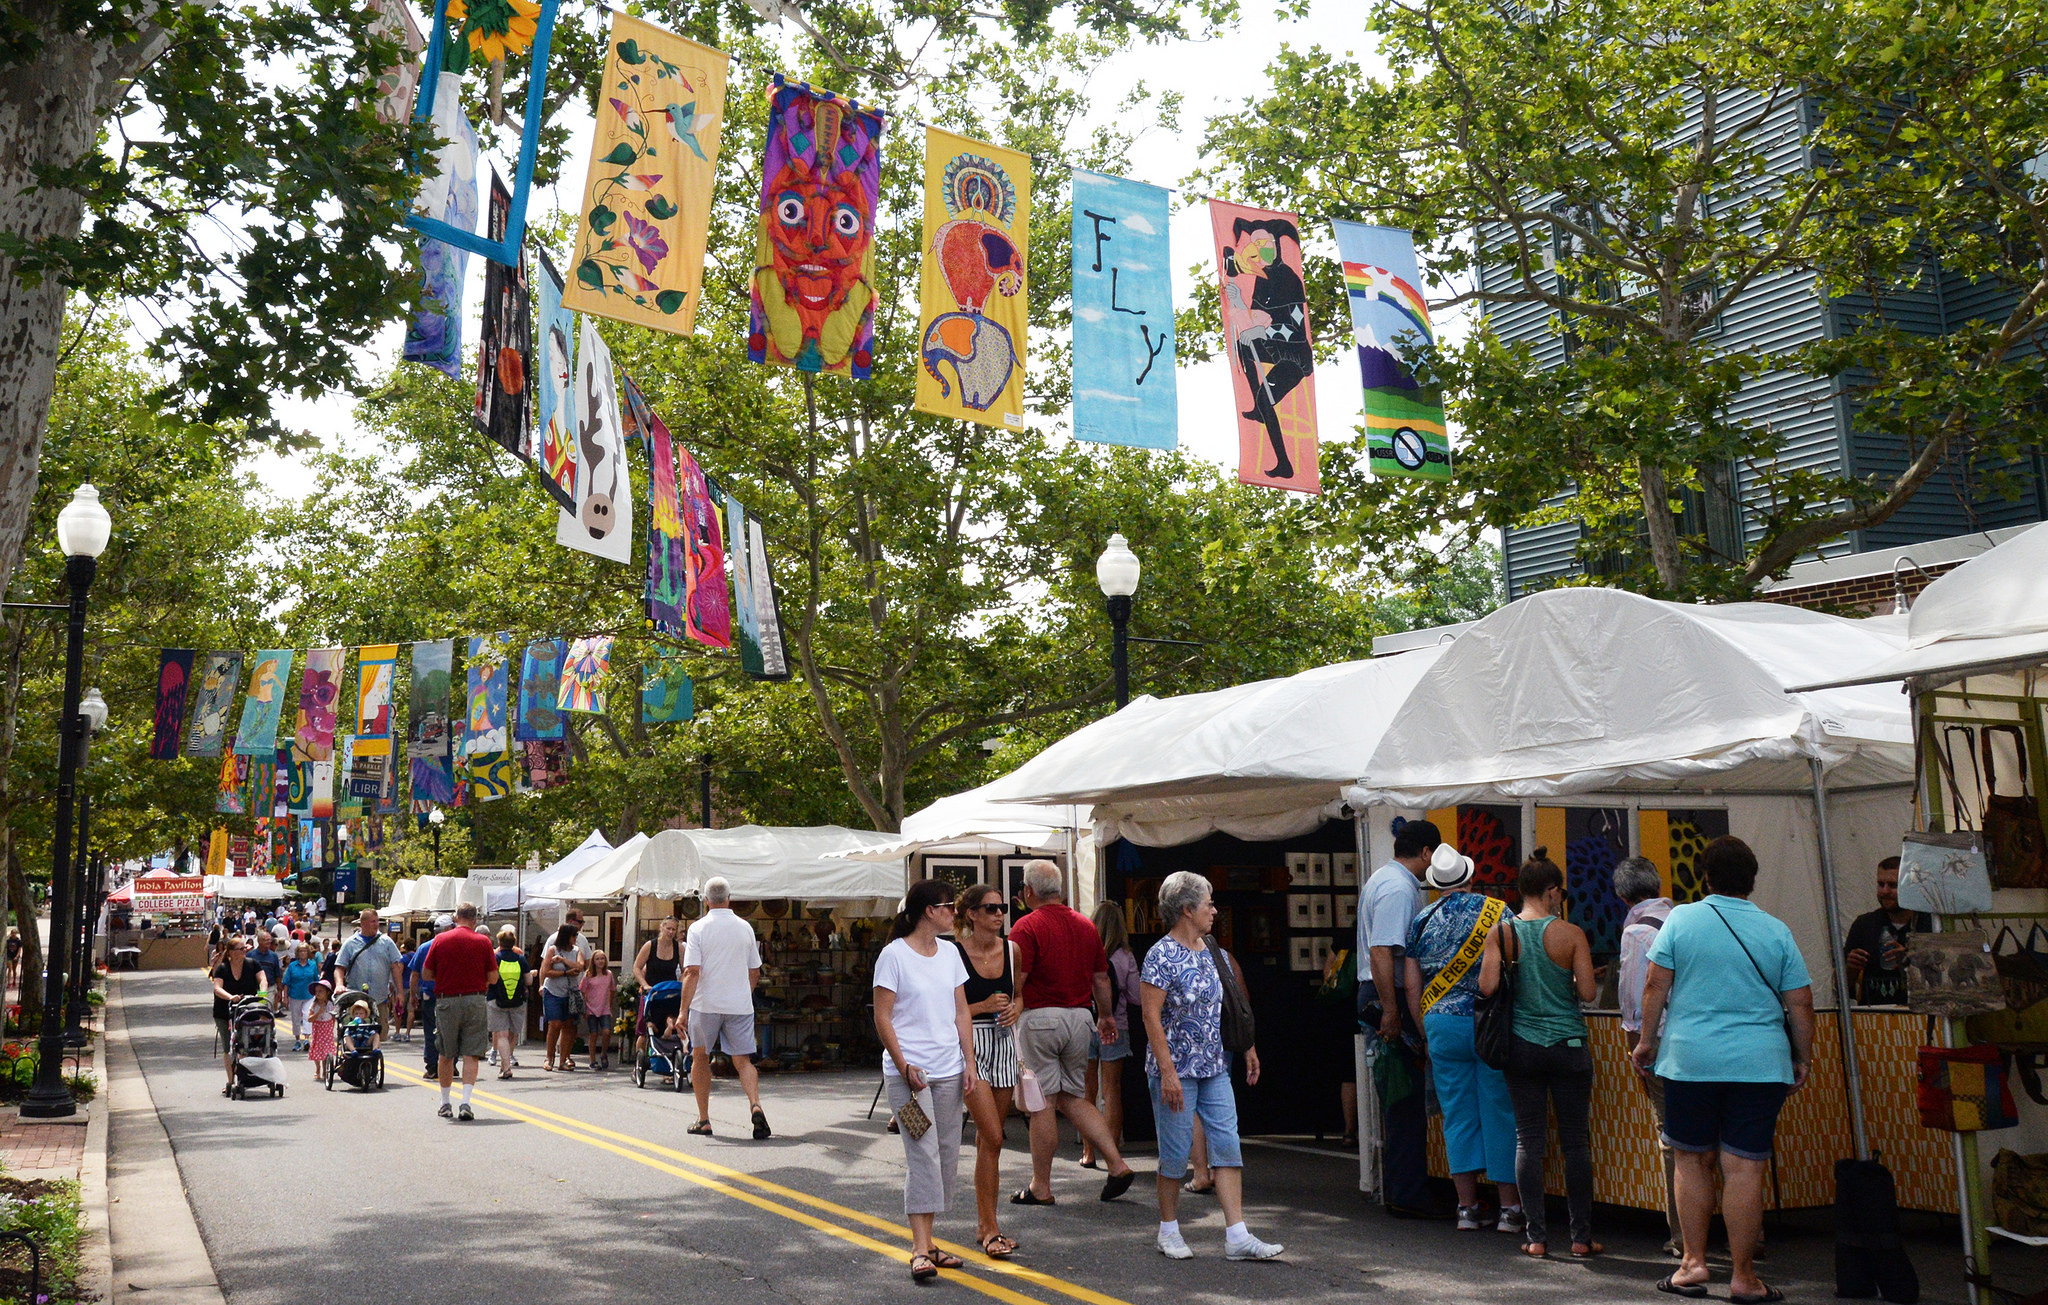 Tivoli Ny Street Painting Festival State College Pennsylvania Is One Of The Happiest Small